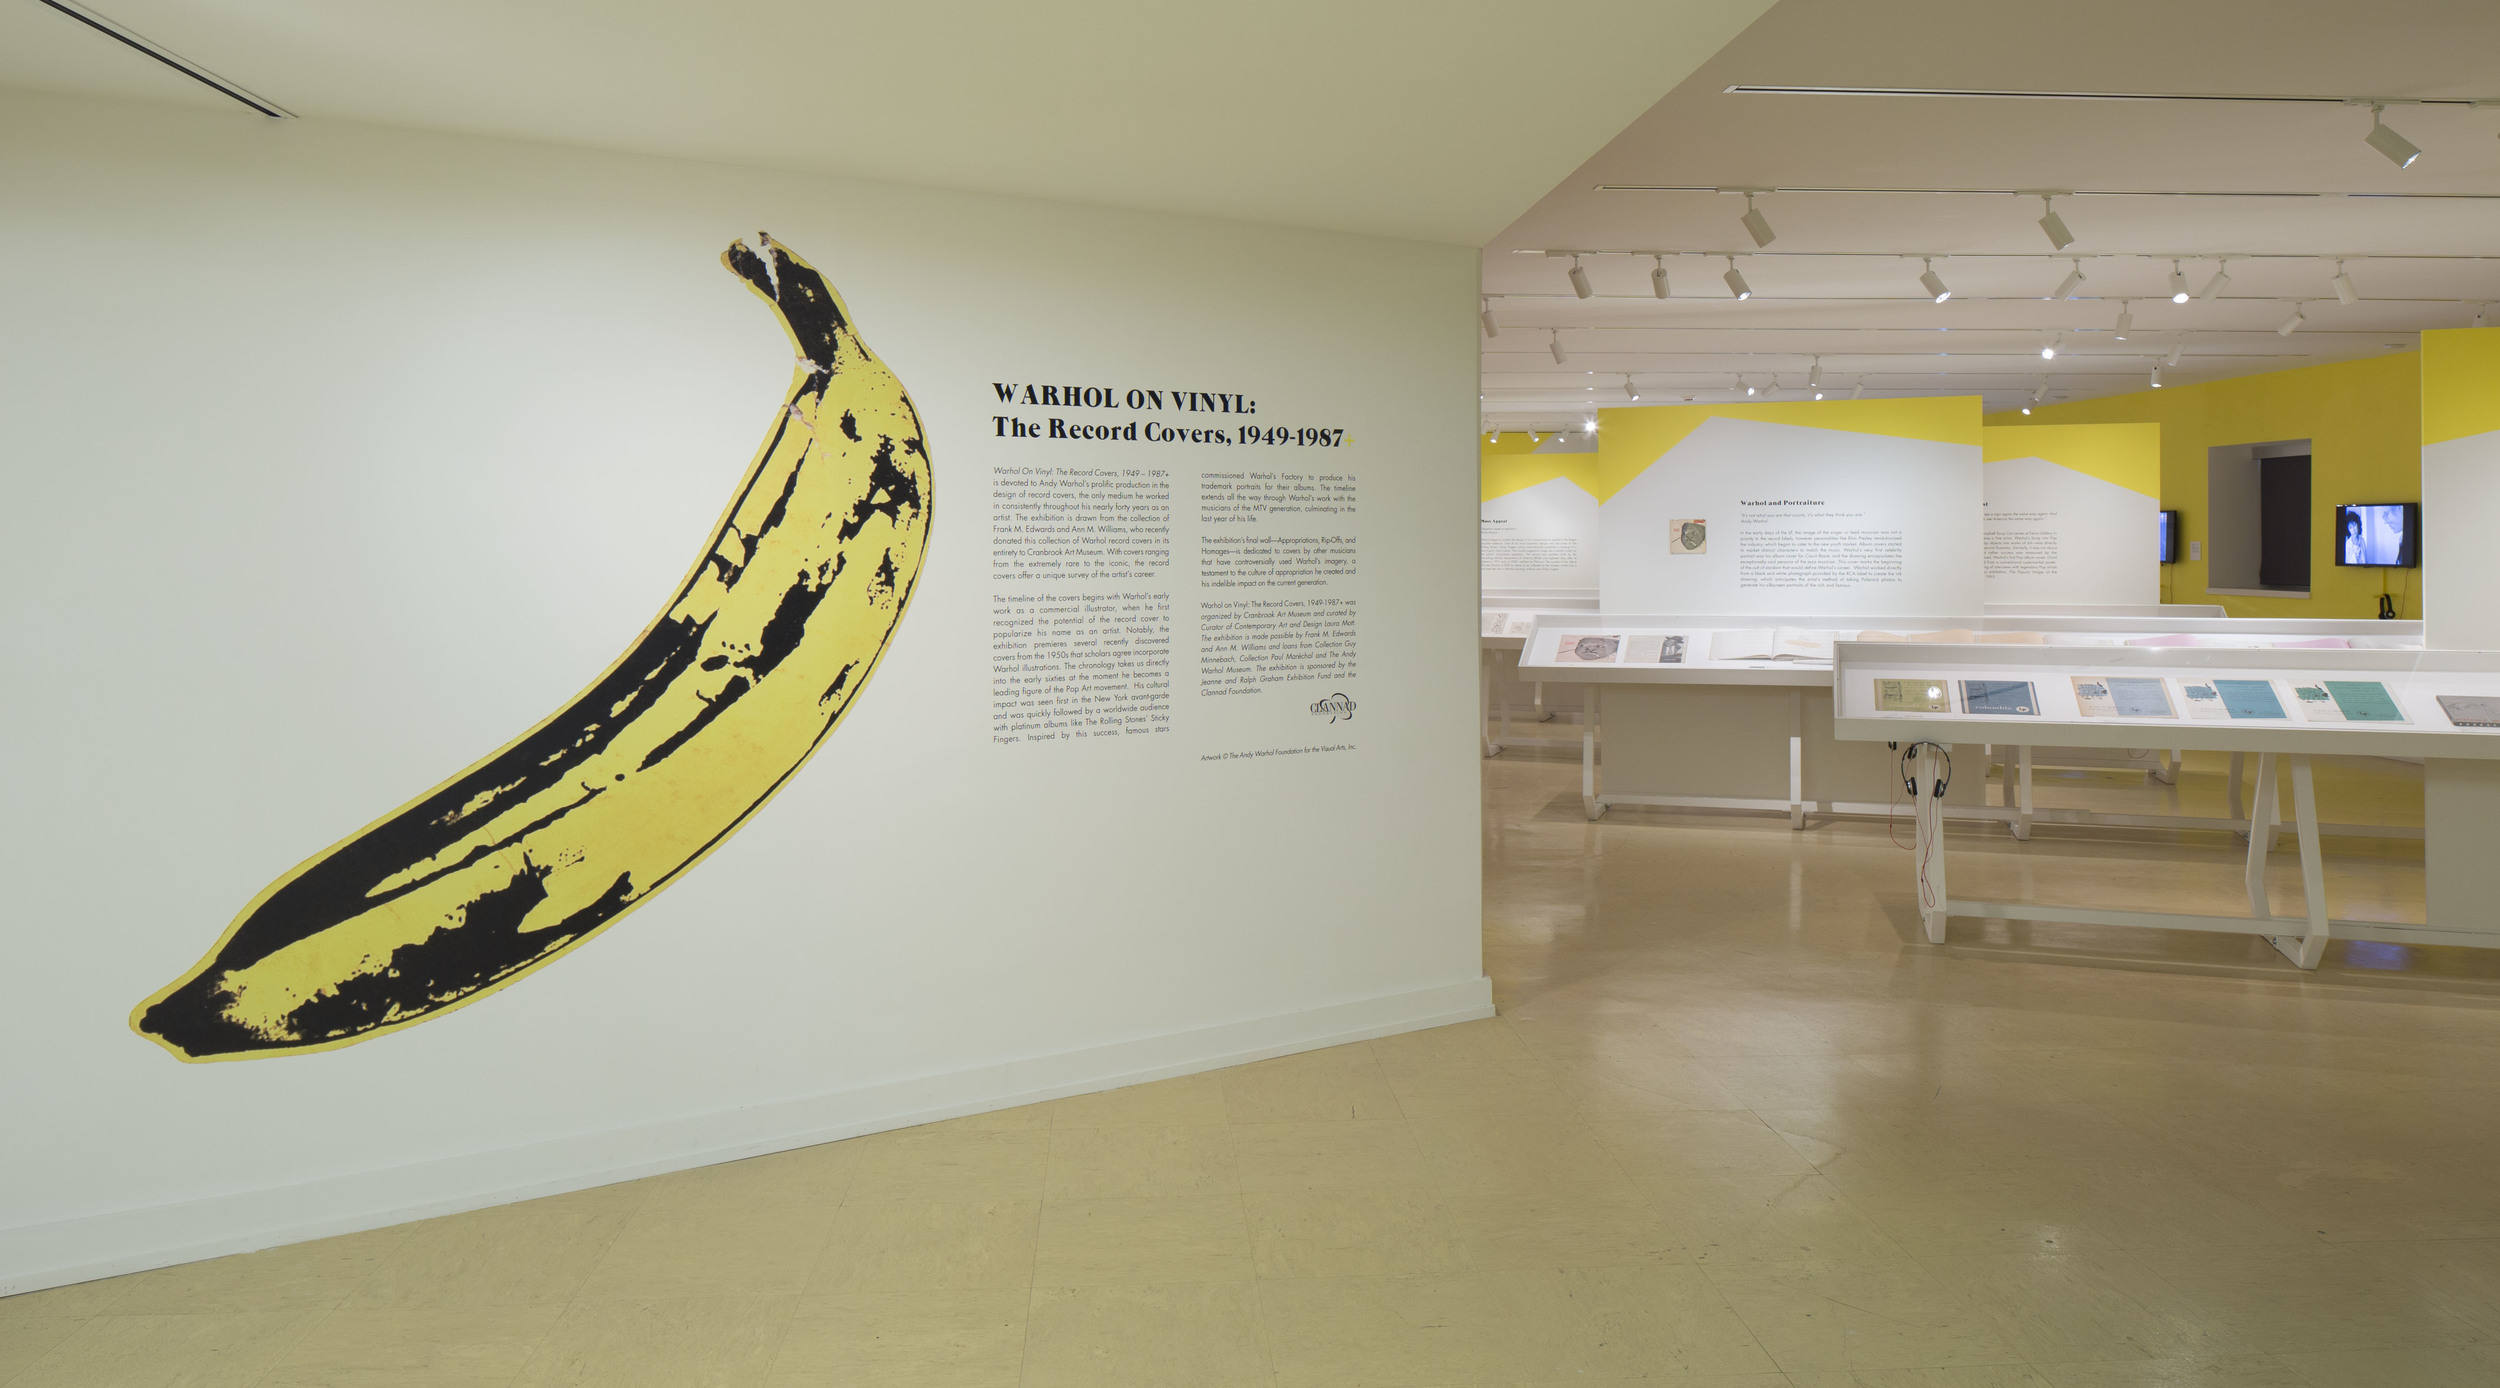 WARHOL ON VINYL: THE RECORD COVERS, 1949-1967+   Cranbrook Art Museum June 2014 - March 2015 Photo: R.H. Hensleigh